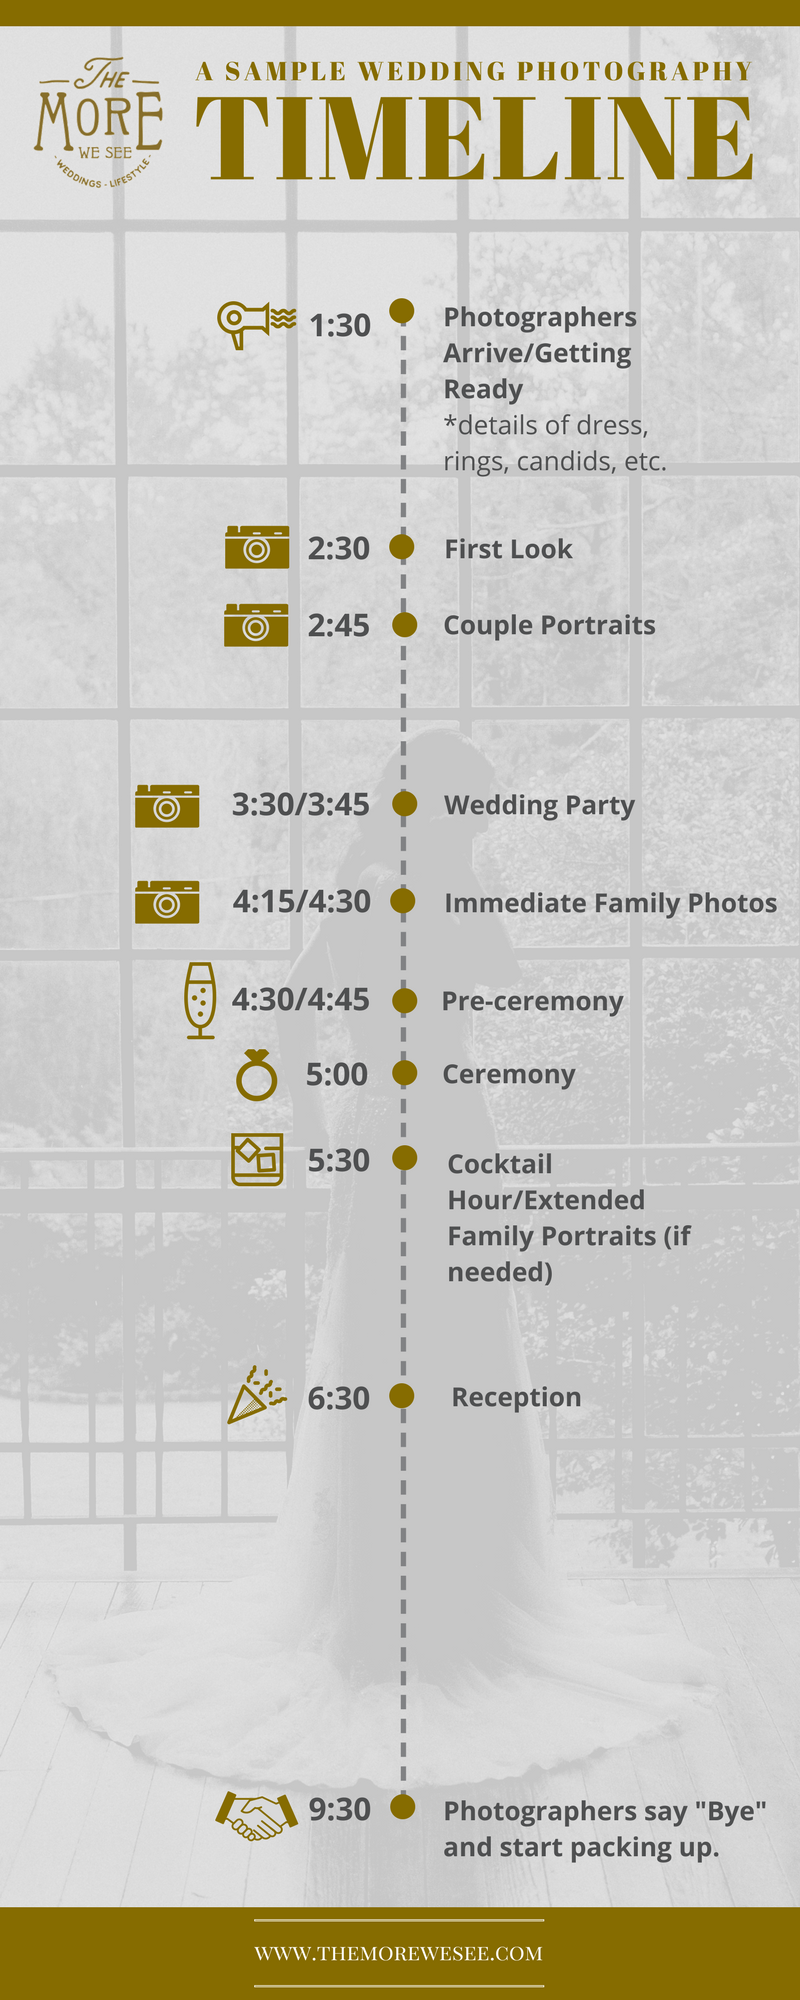 An example of a typical wedding day. (Of course times and events will vary.) **Click on infographic to zoom in.